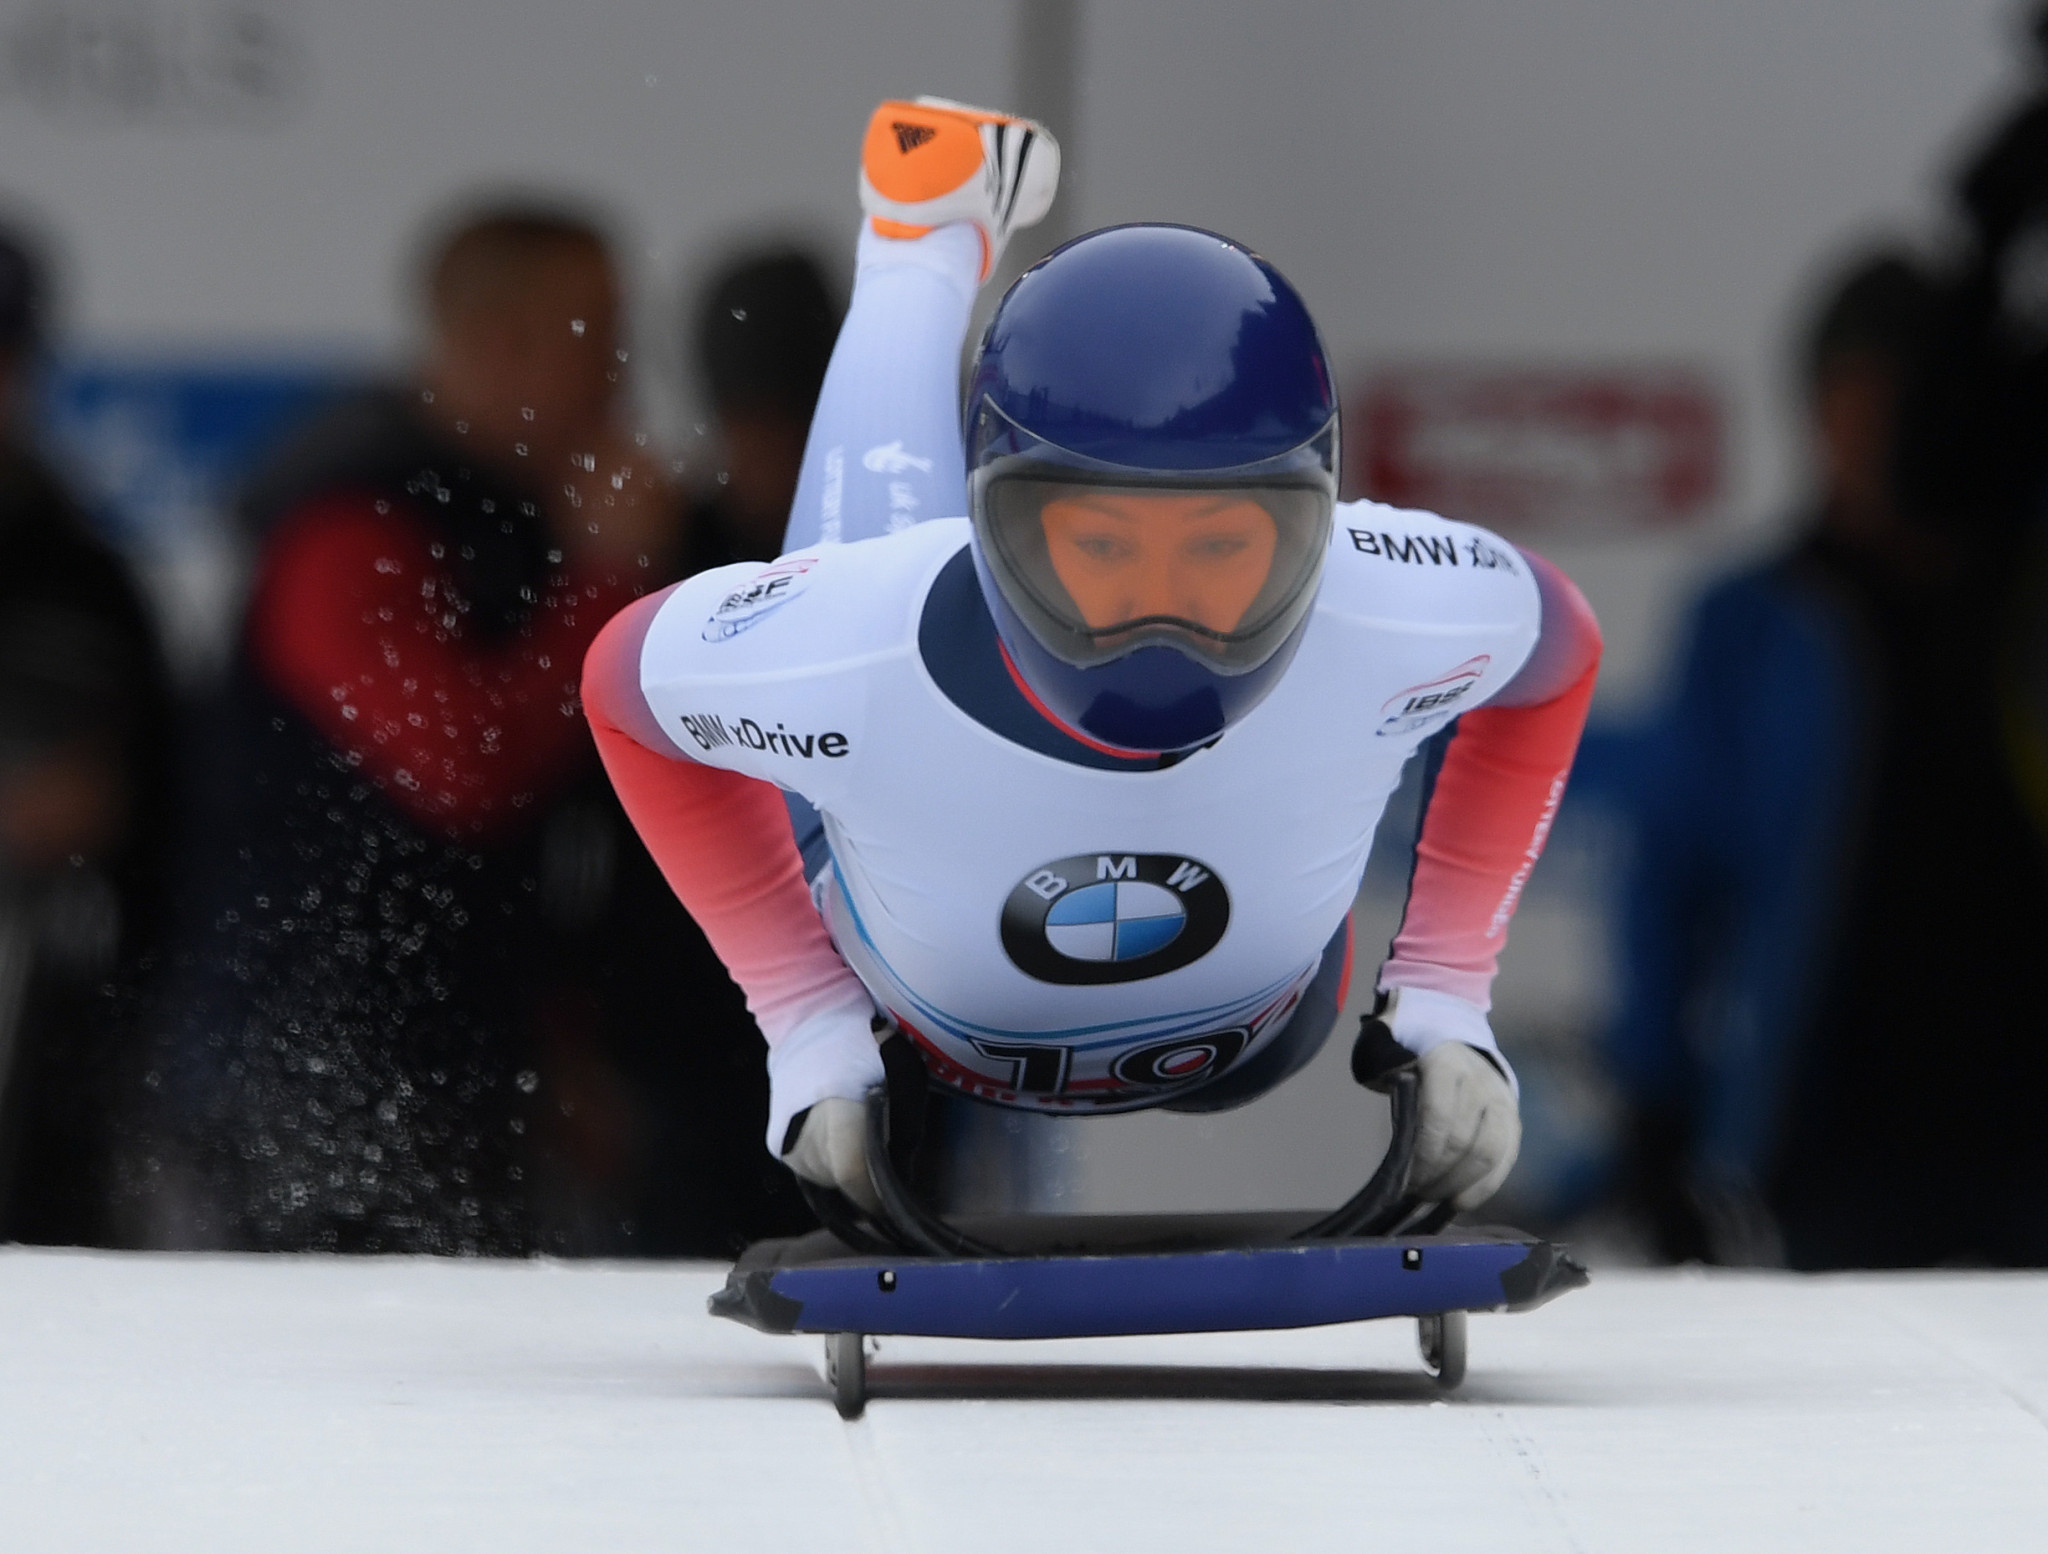 Donna Creighton, who switched from skeleton to bobsleigh, is also trying to raise funds ©Getty Images